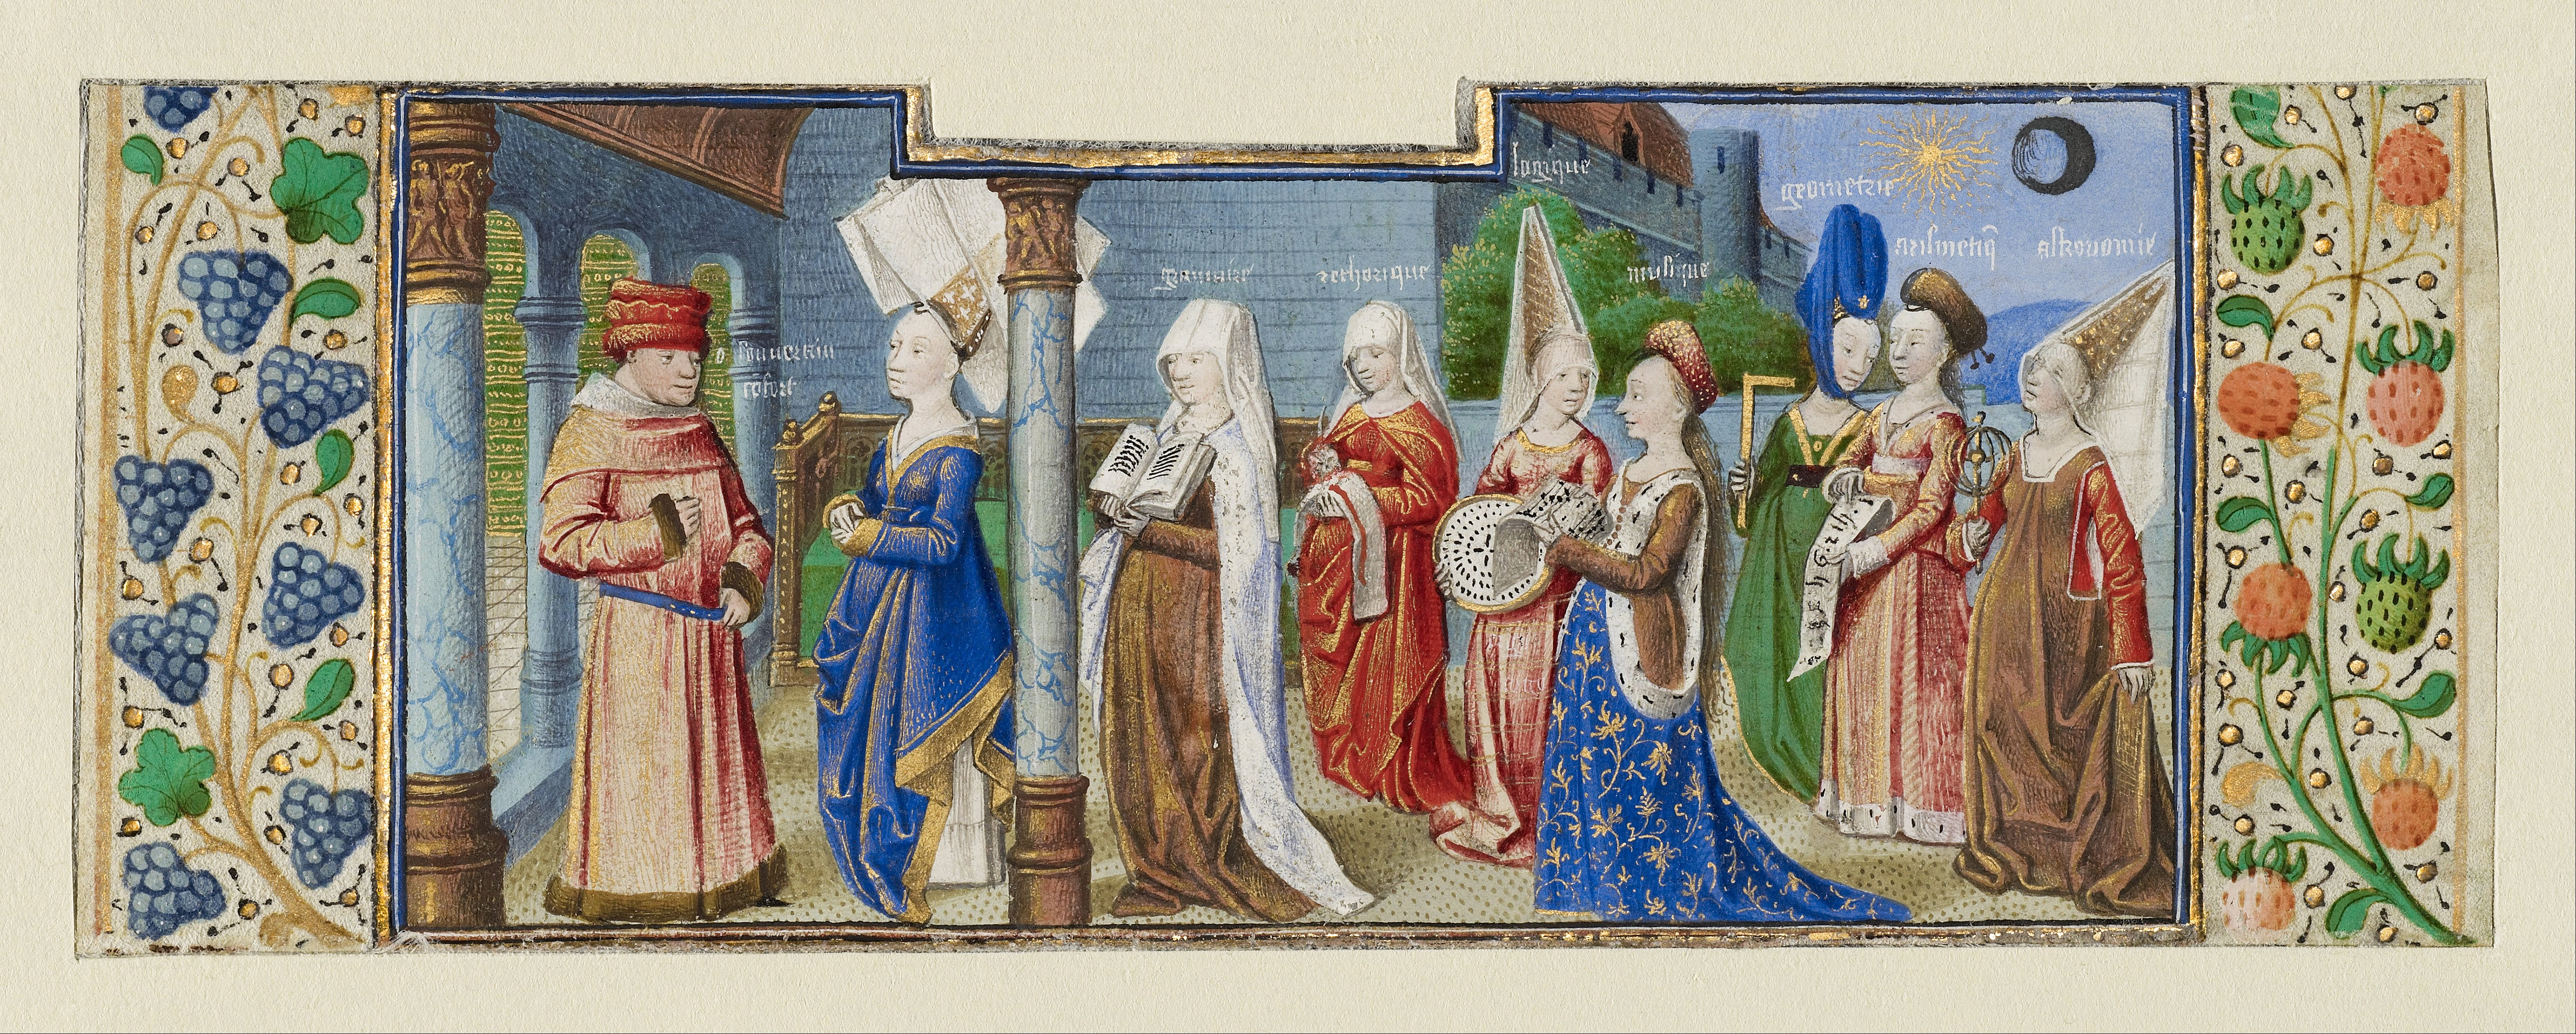 Philosophy Presenting the Seven Liberal Arts to Boethius.